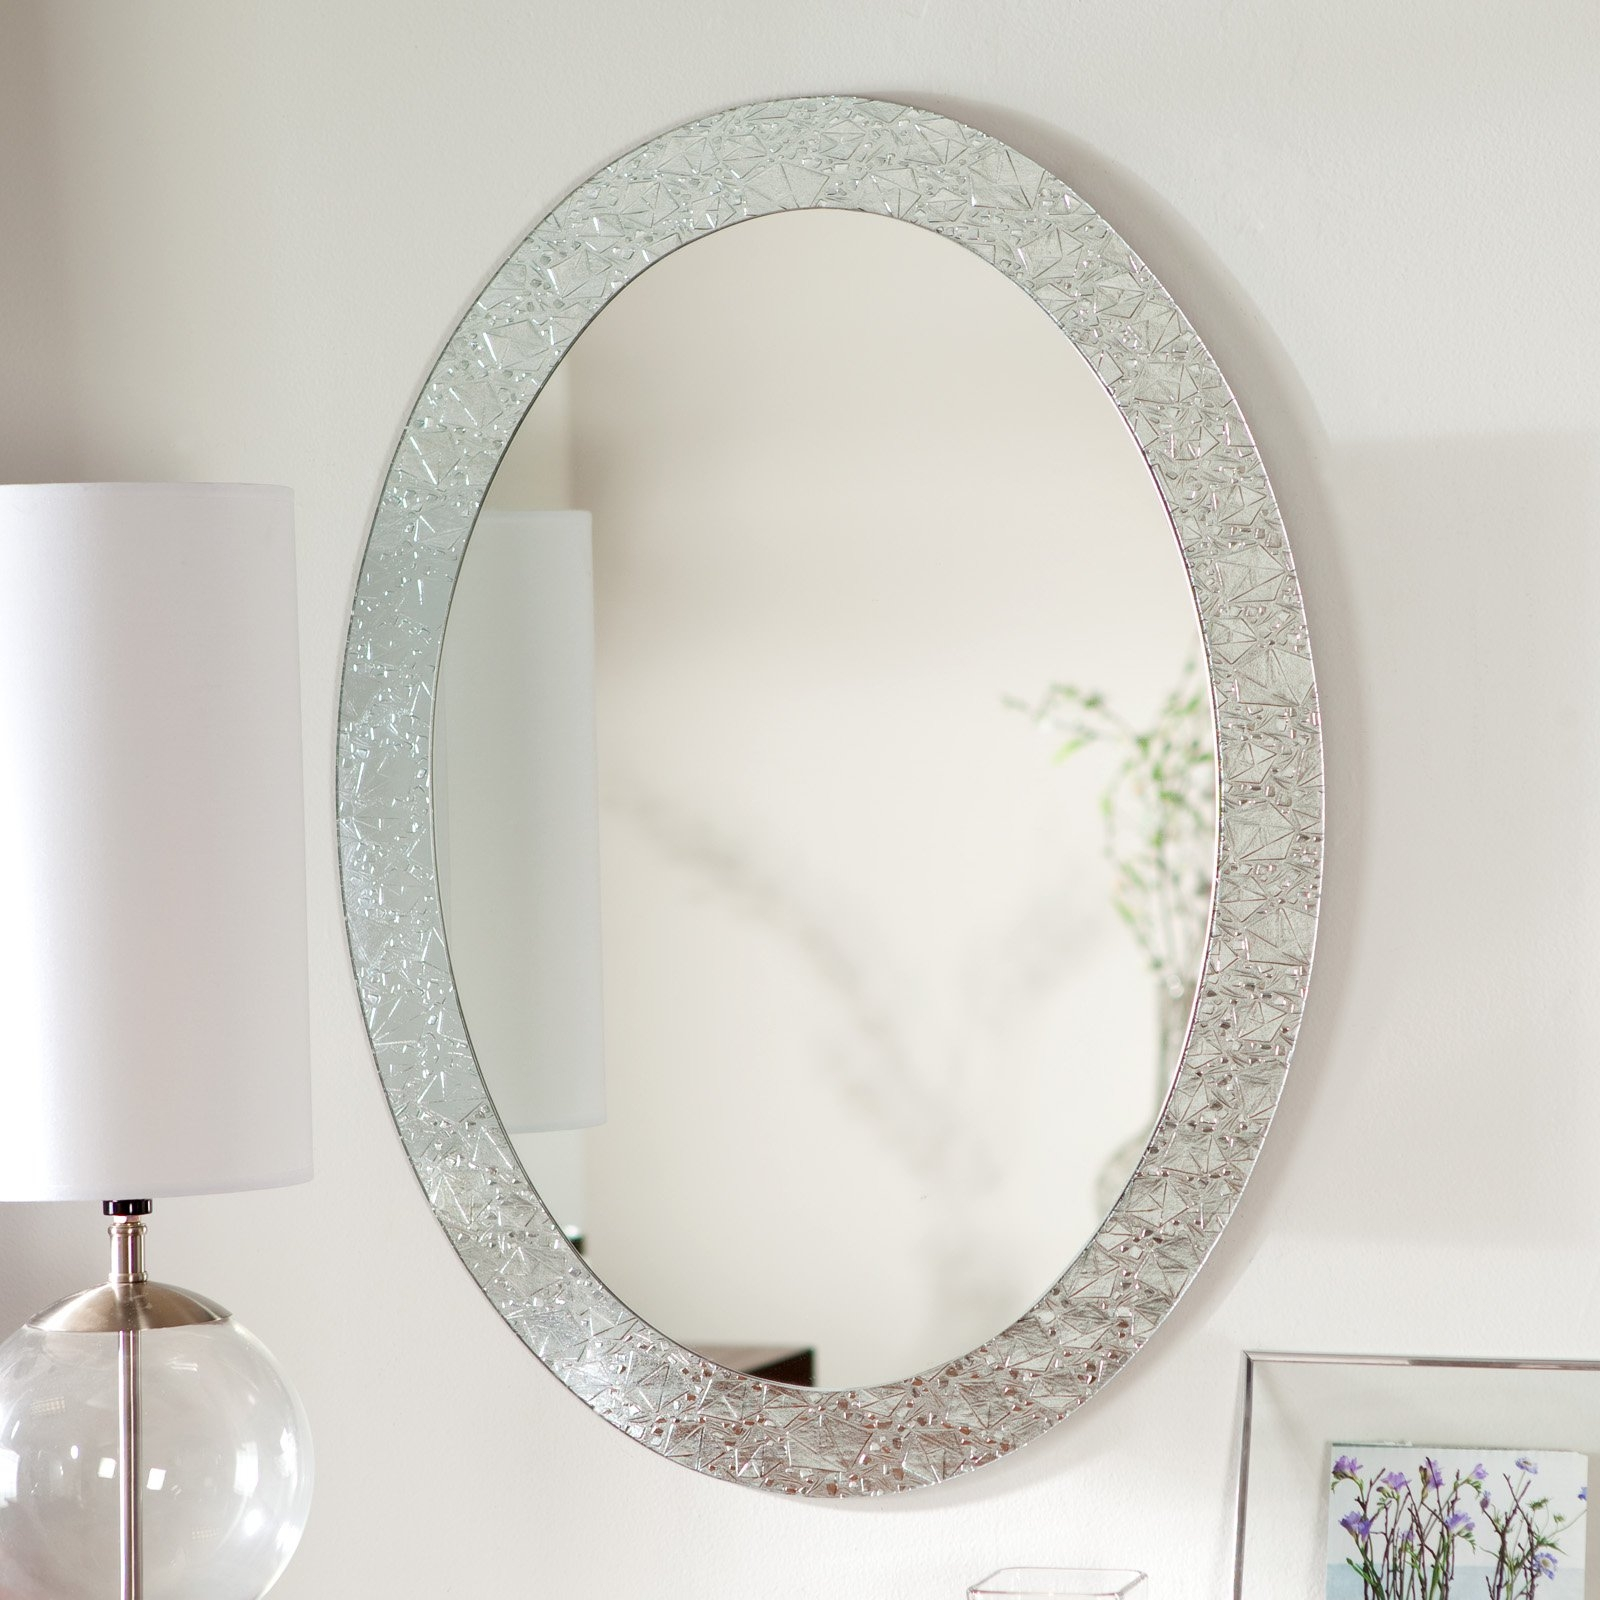 Elegant Oval Bathroom Mirrorsoval bathroom mirrors for elegant bathroom design bathroom glass